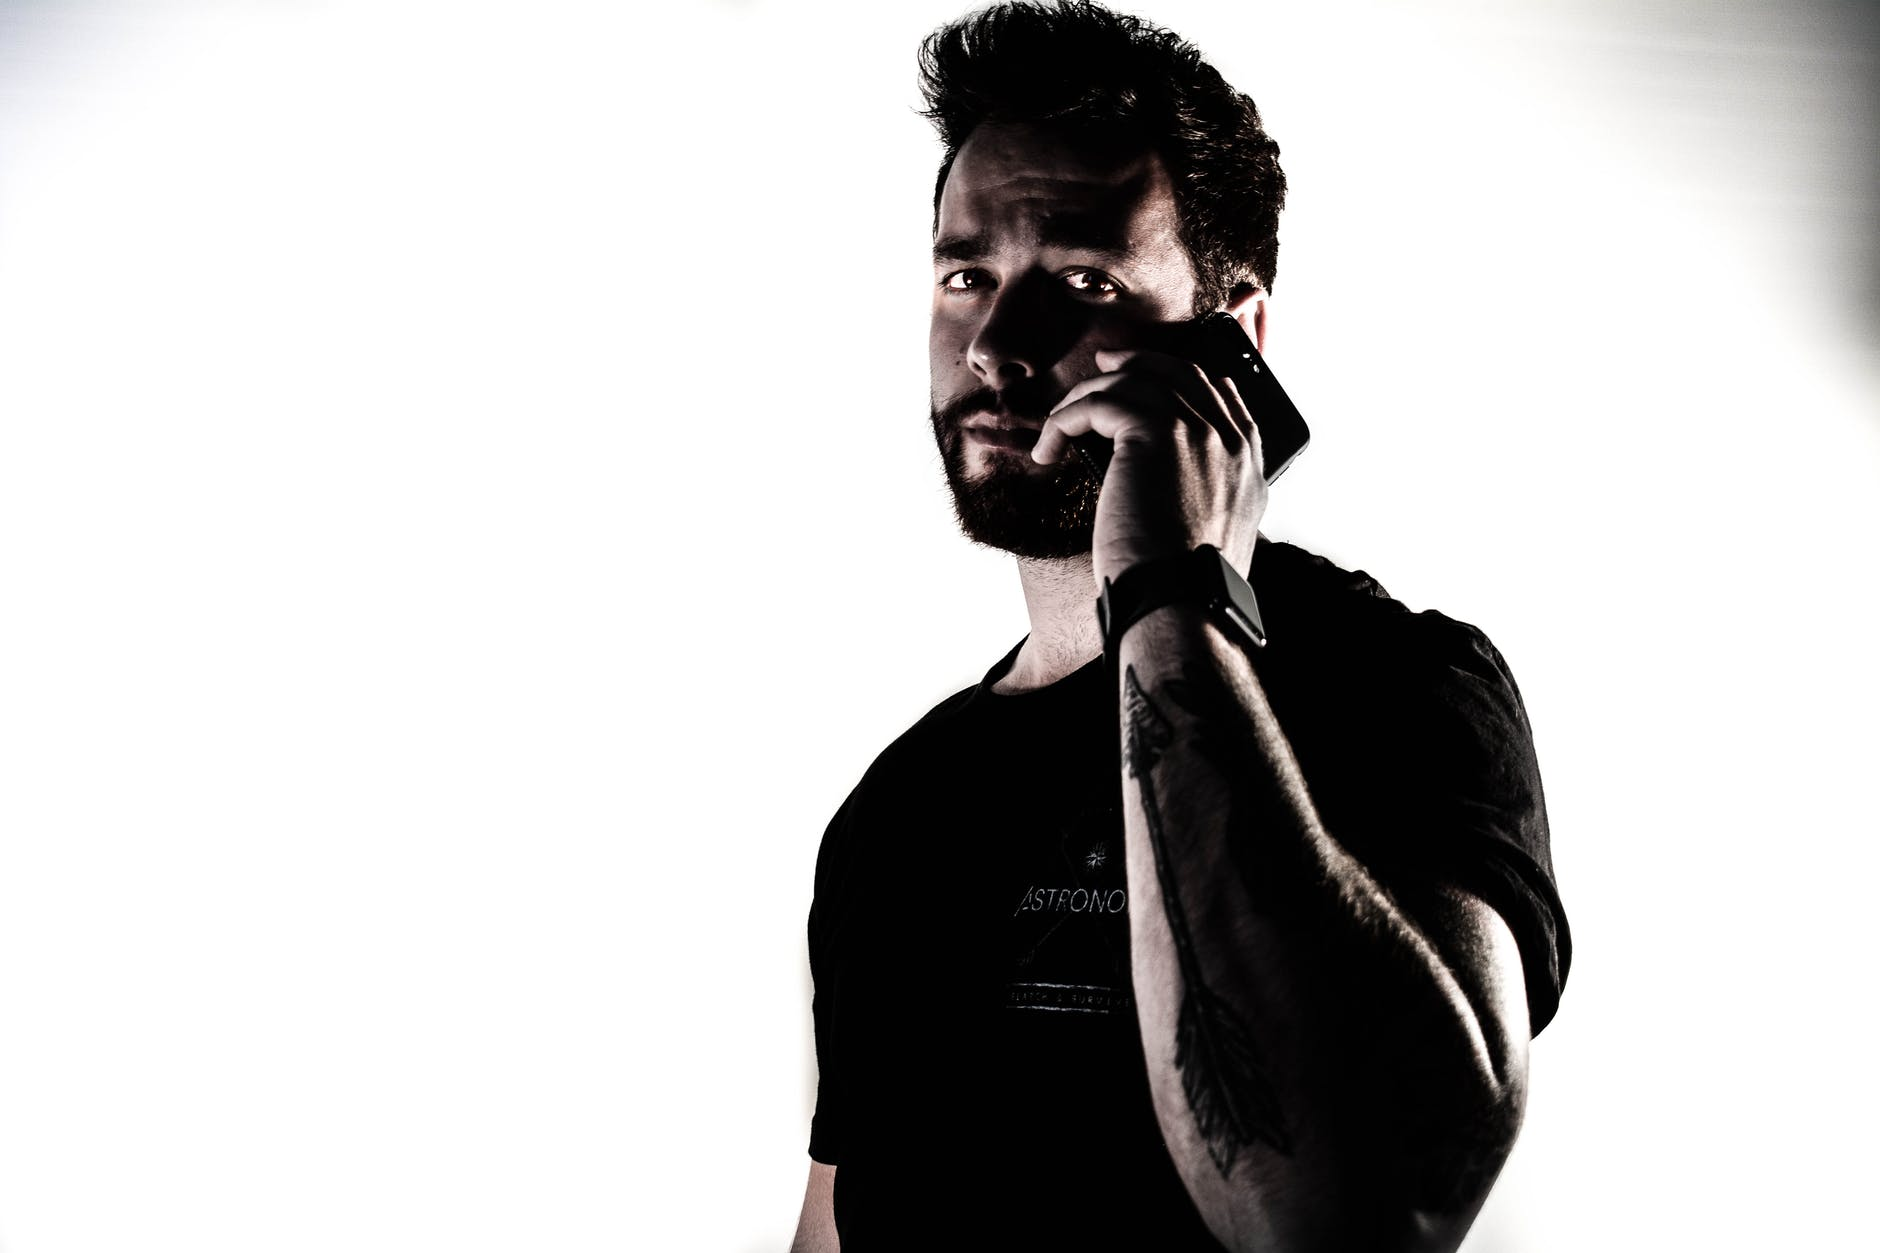 adult beard casual cellphone